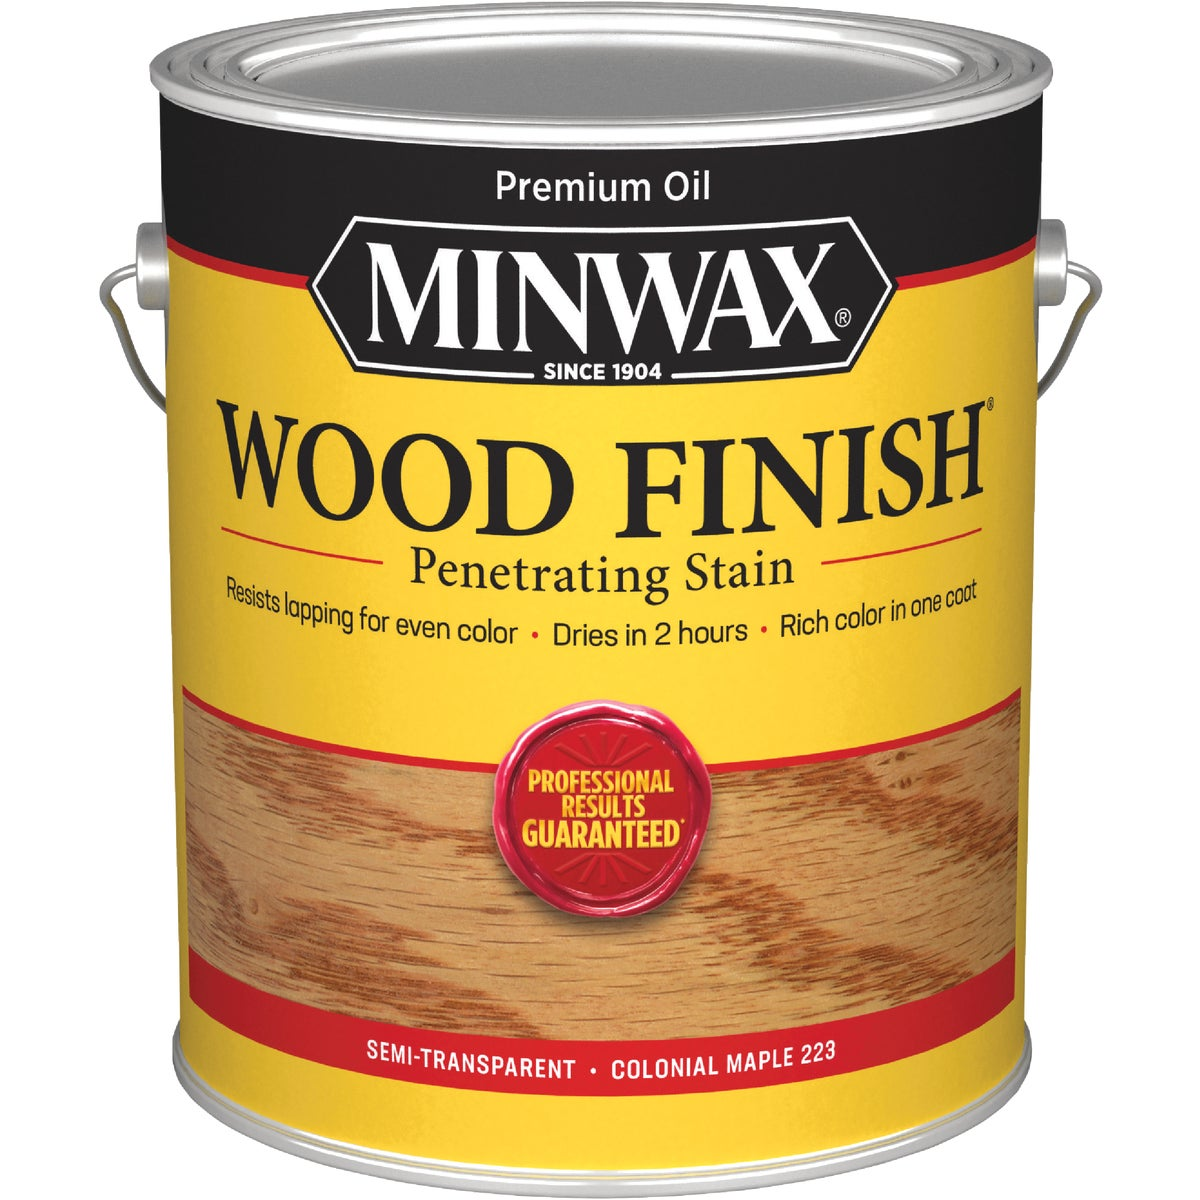 COLNL MAPLE WOOD STAIN - 71005 by Minwax Company